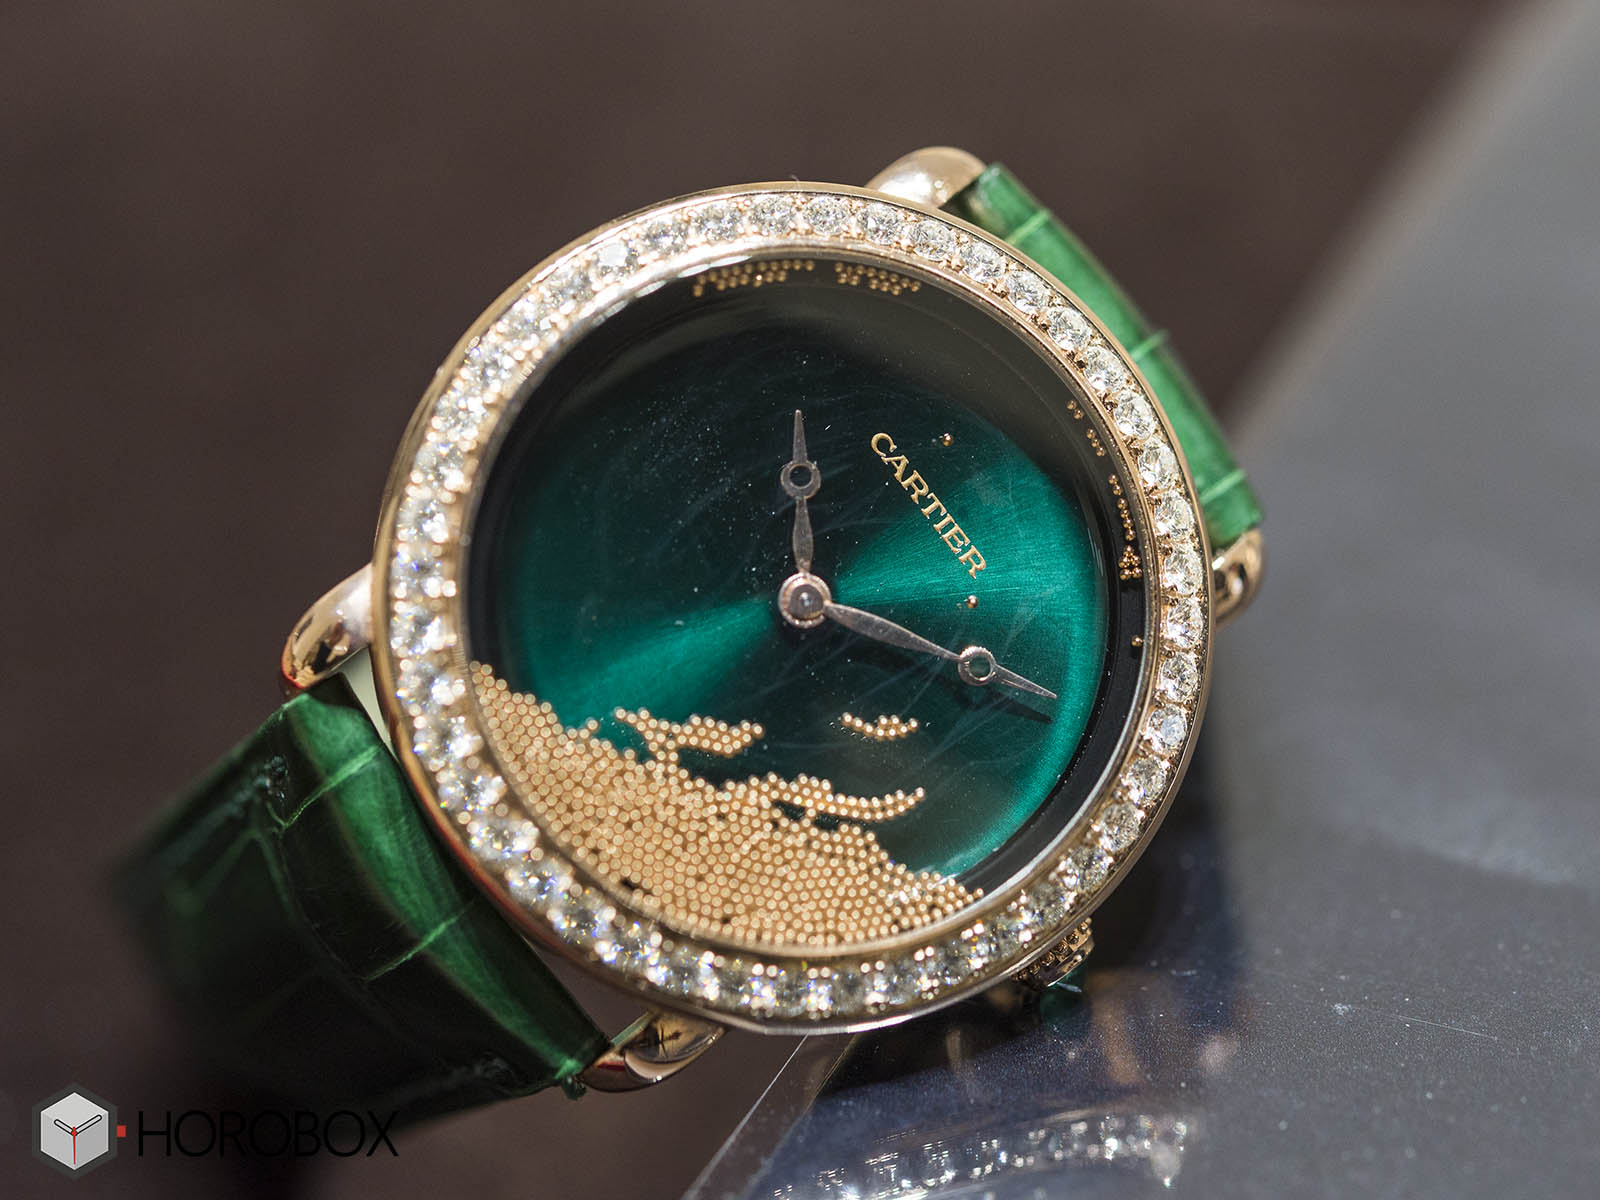 HP-01261-Cartier-Revelation-D-une-Panthere-Sihh-2018-1.jpg